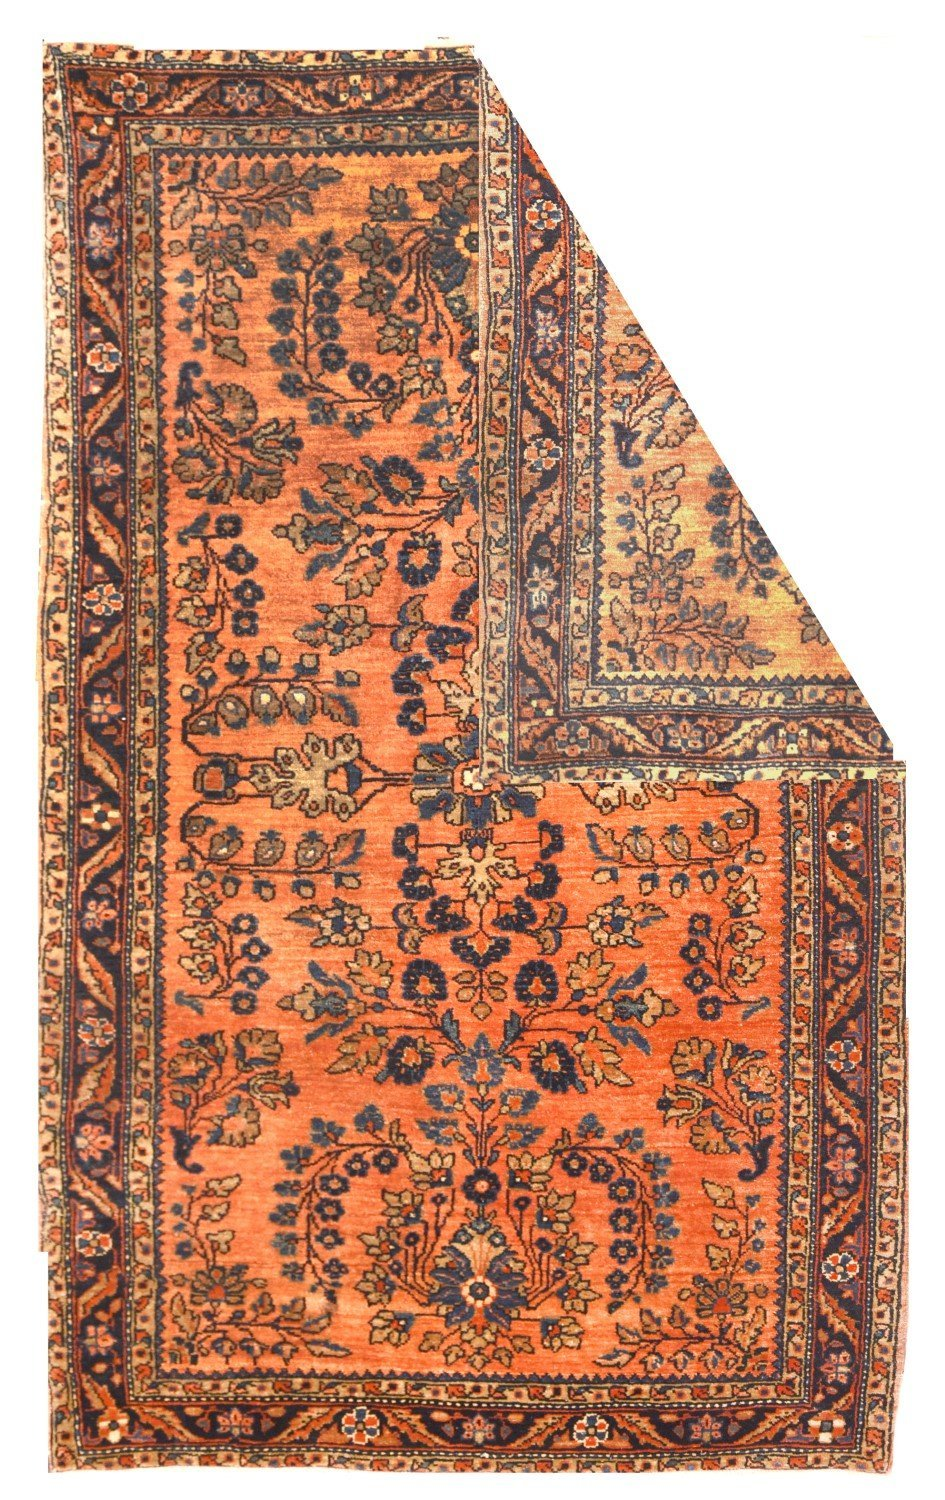 Antique Sarouk Perisan Rug